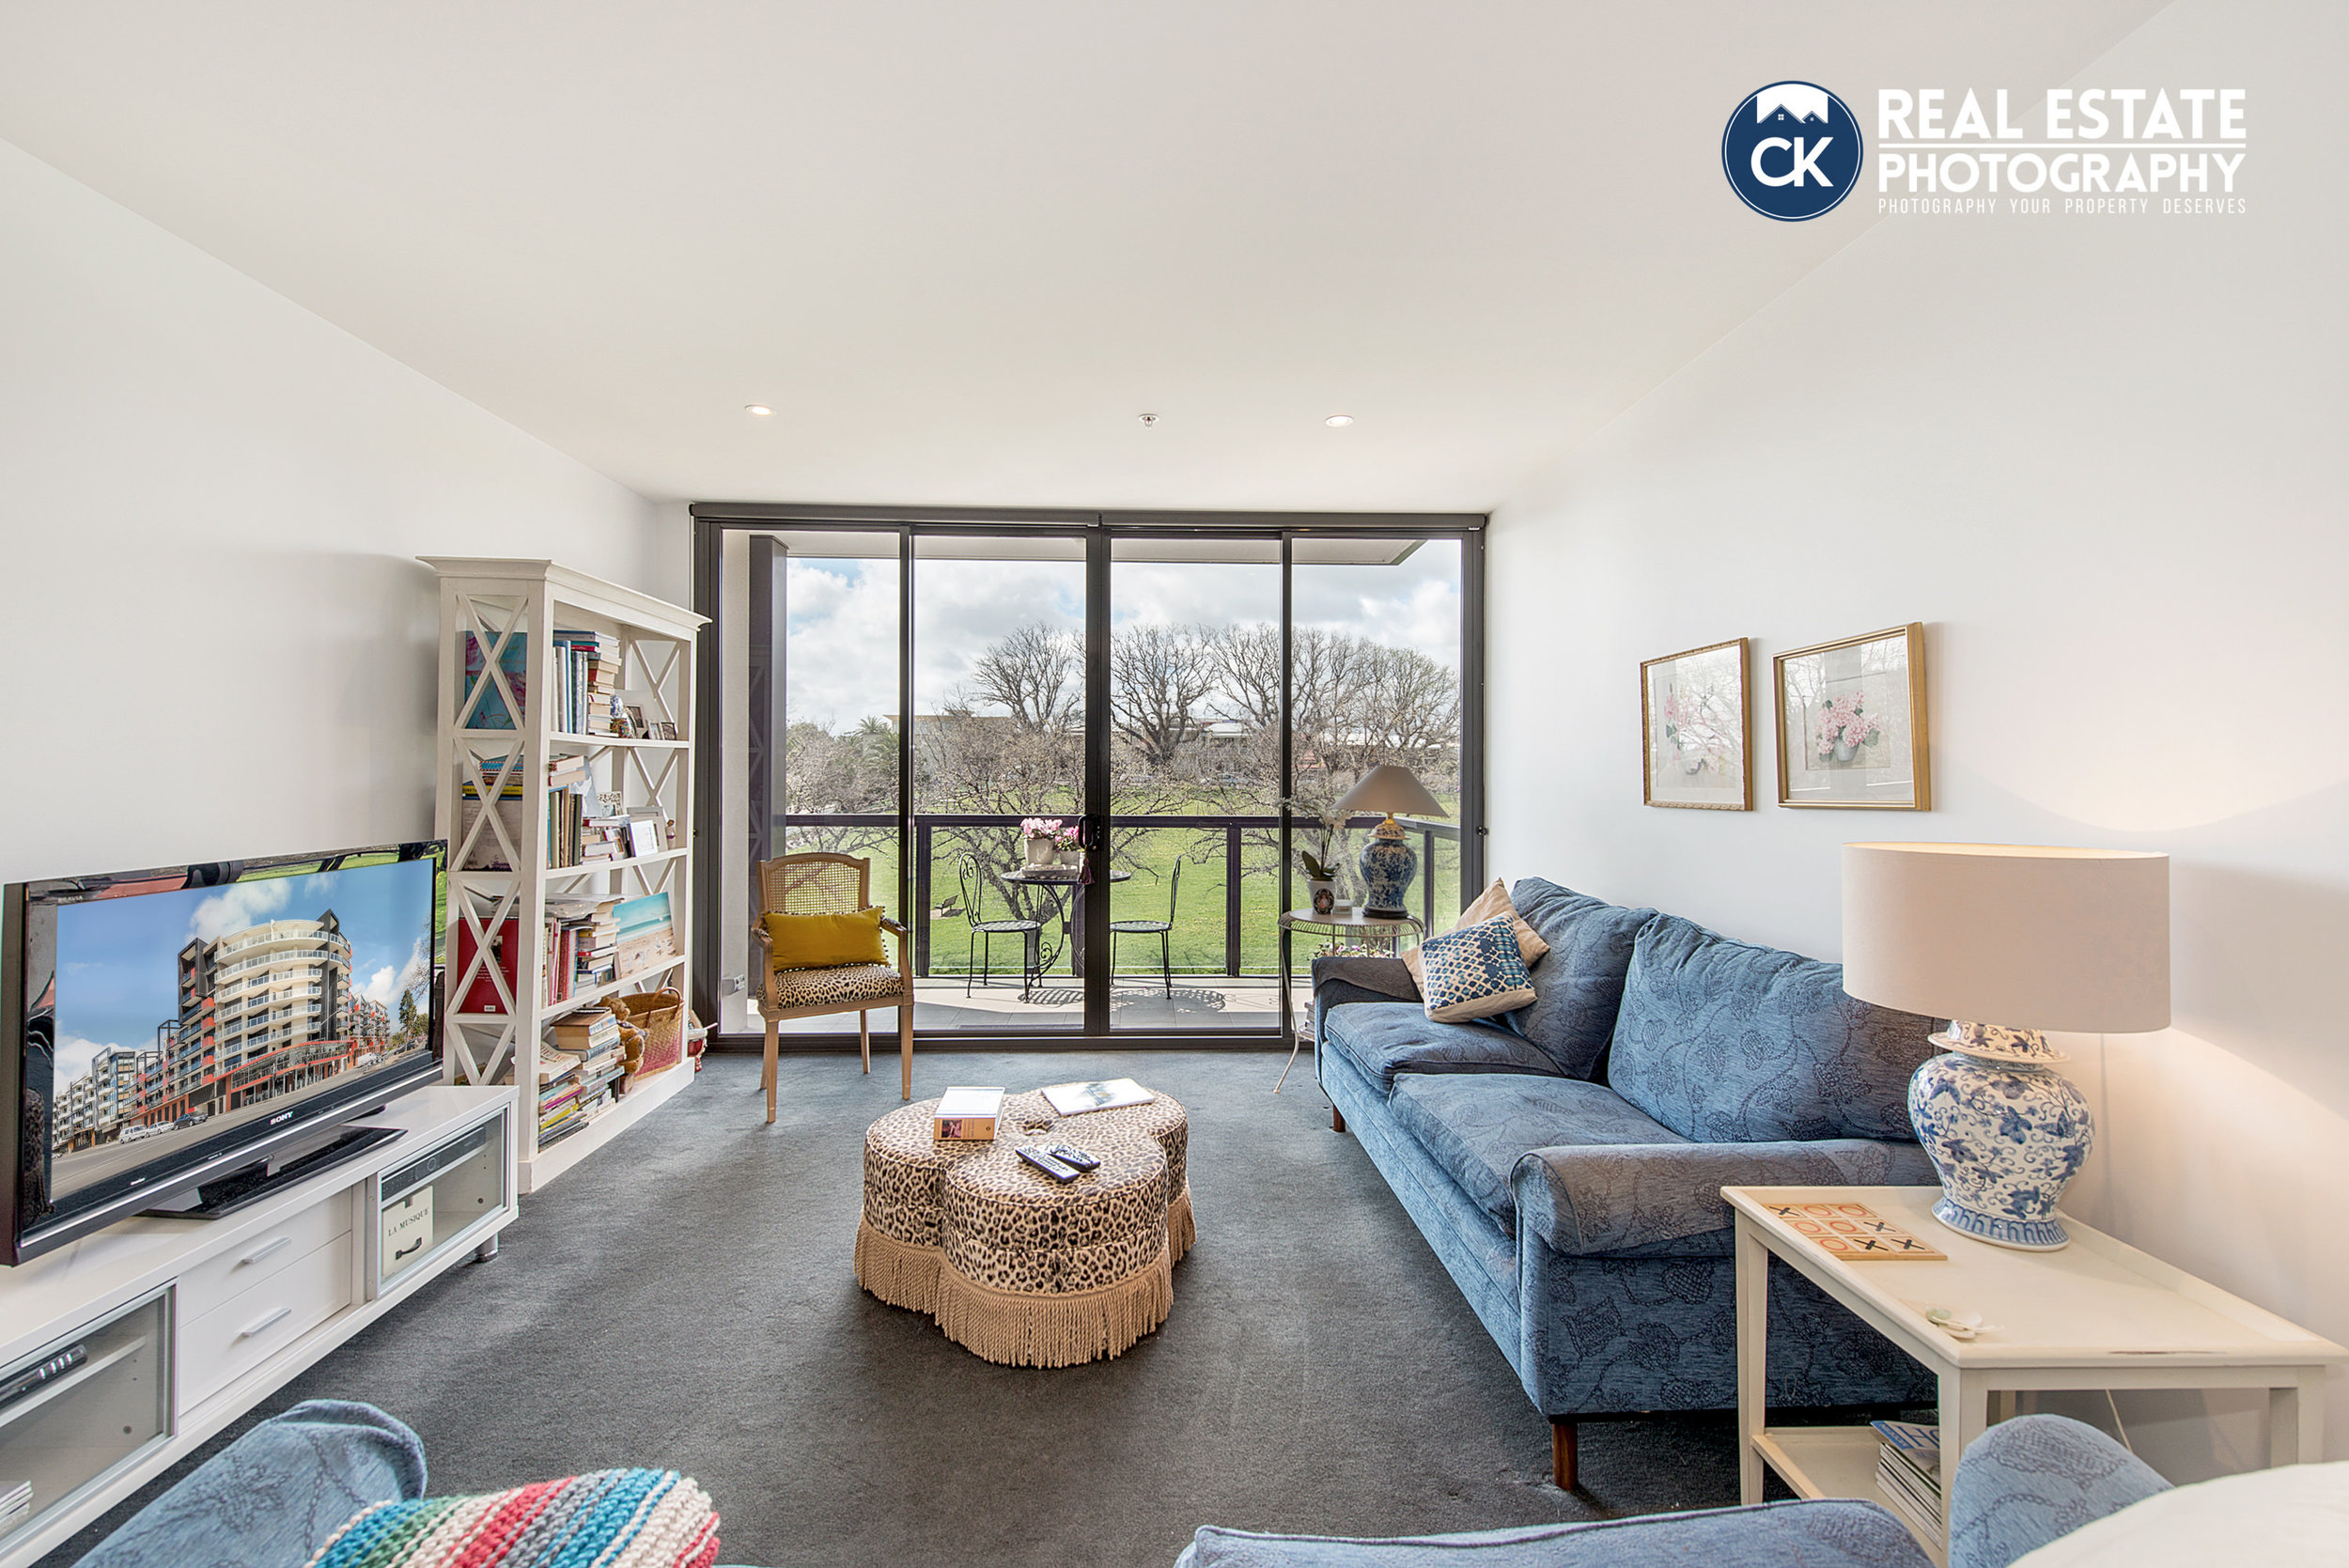 Professional Real Estate Photography in Geelong